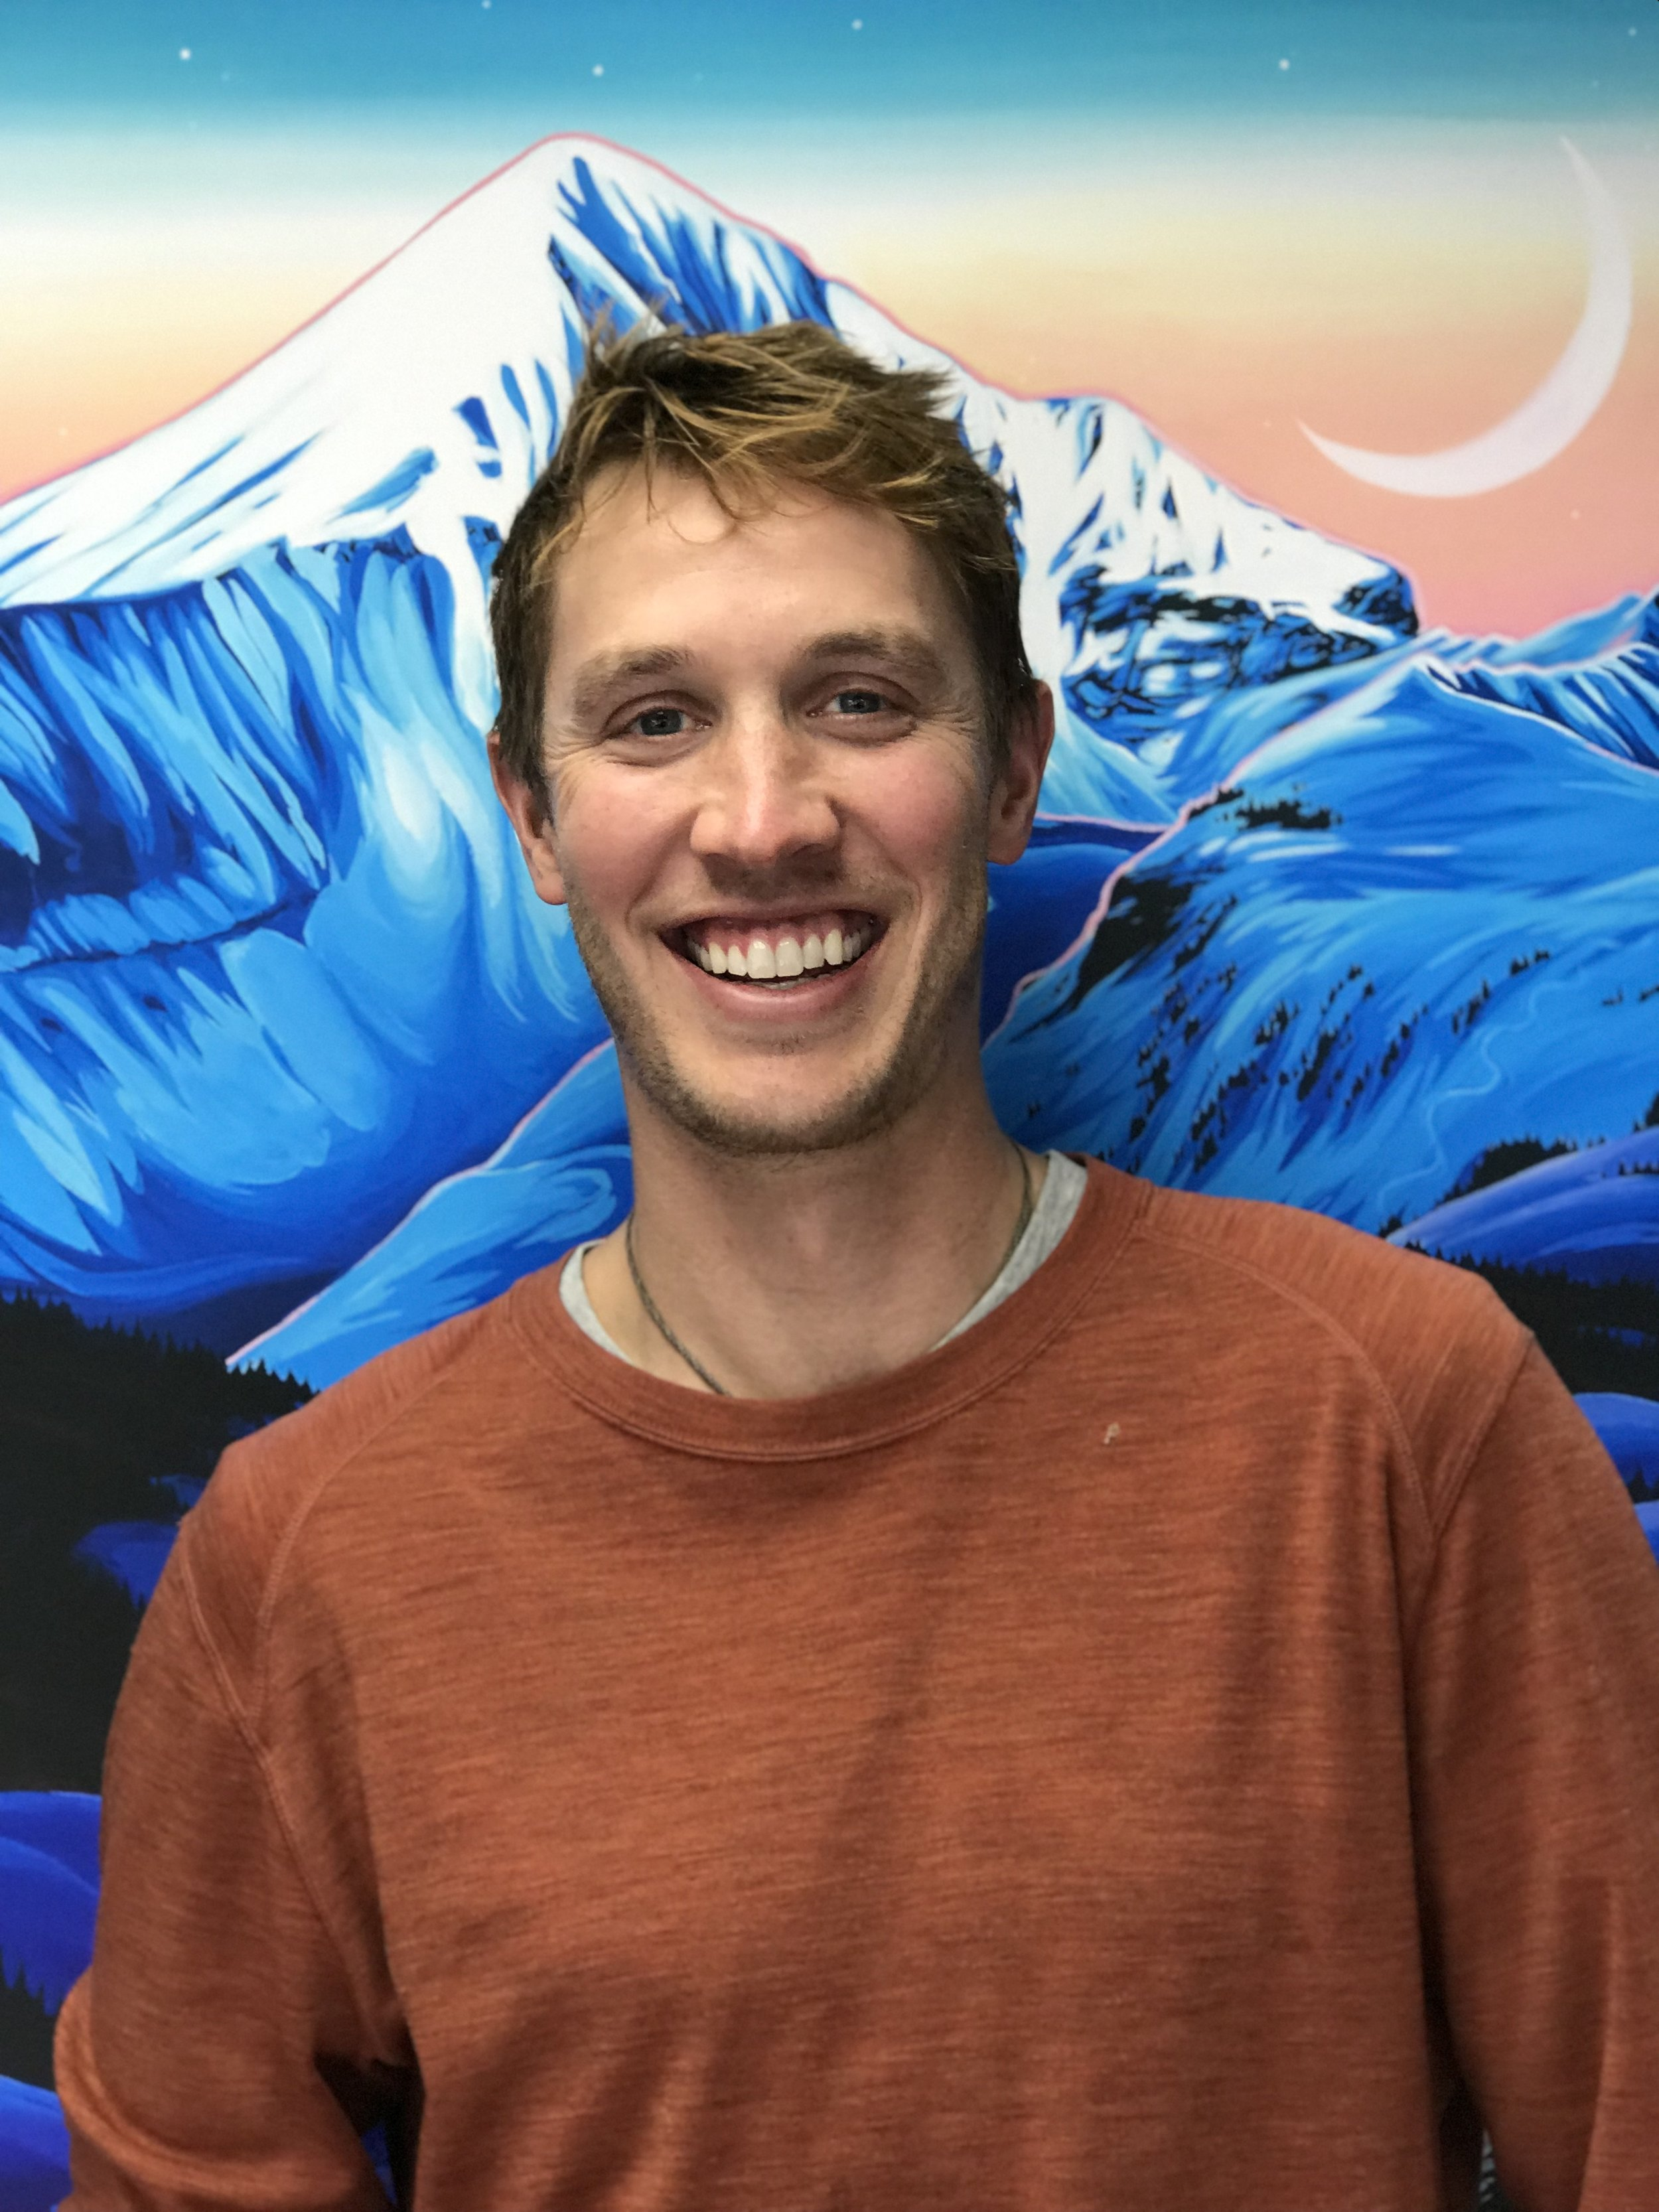 Our New Executive Director - Robin Hill!  Robin is a true local, not only did he grow up in Bozeman, he used to be a Program Manager! Something we've always loved about Robin is his ability to be inclusive. Robin wants to hear the voices of every individual and that reflects in the way he leads. For a truly kind interaction go say hi to Robin, he has an open door policy and is dying to meet you! Connect at robin.hill@byep.org